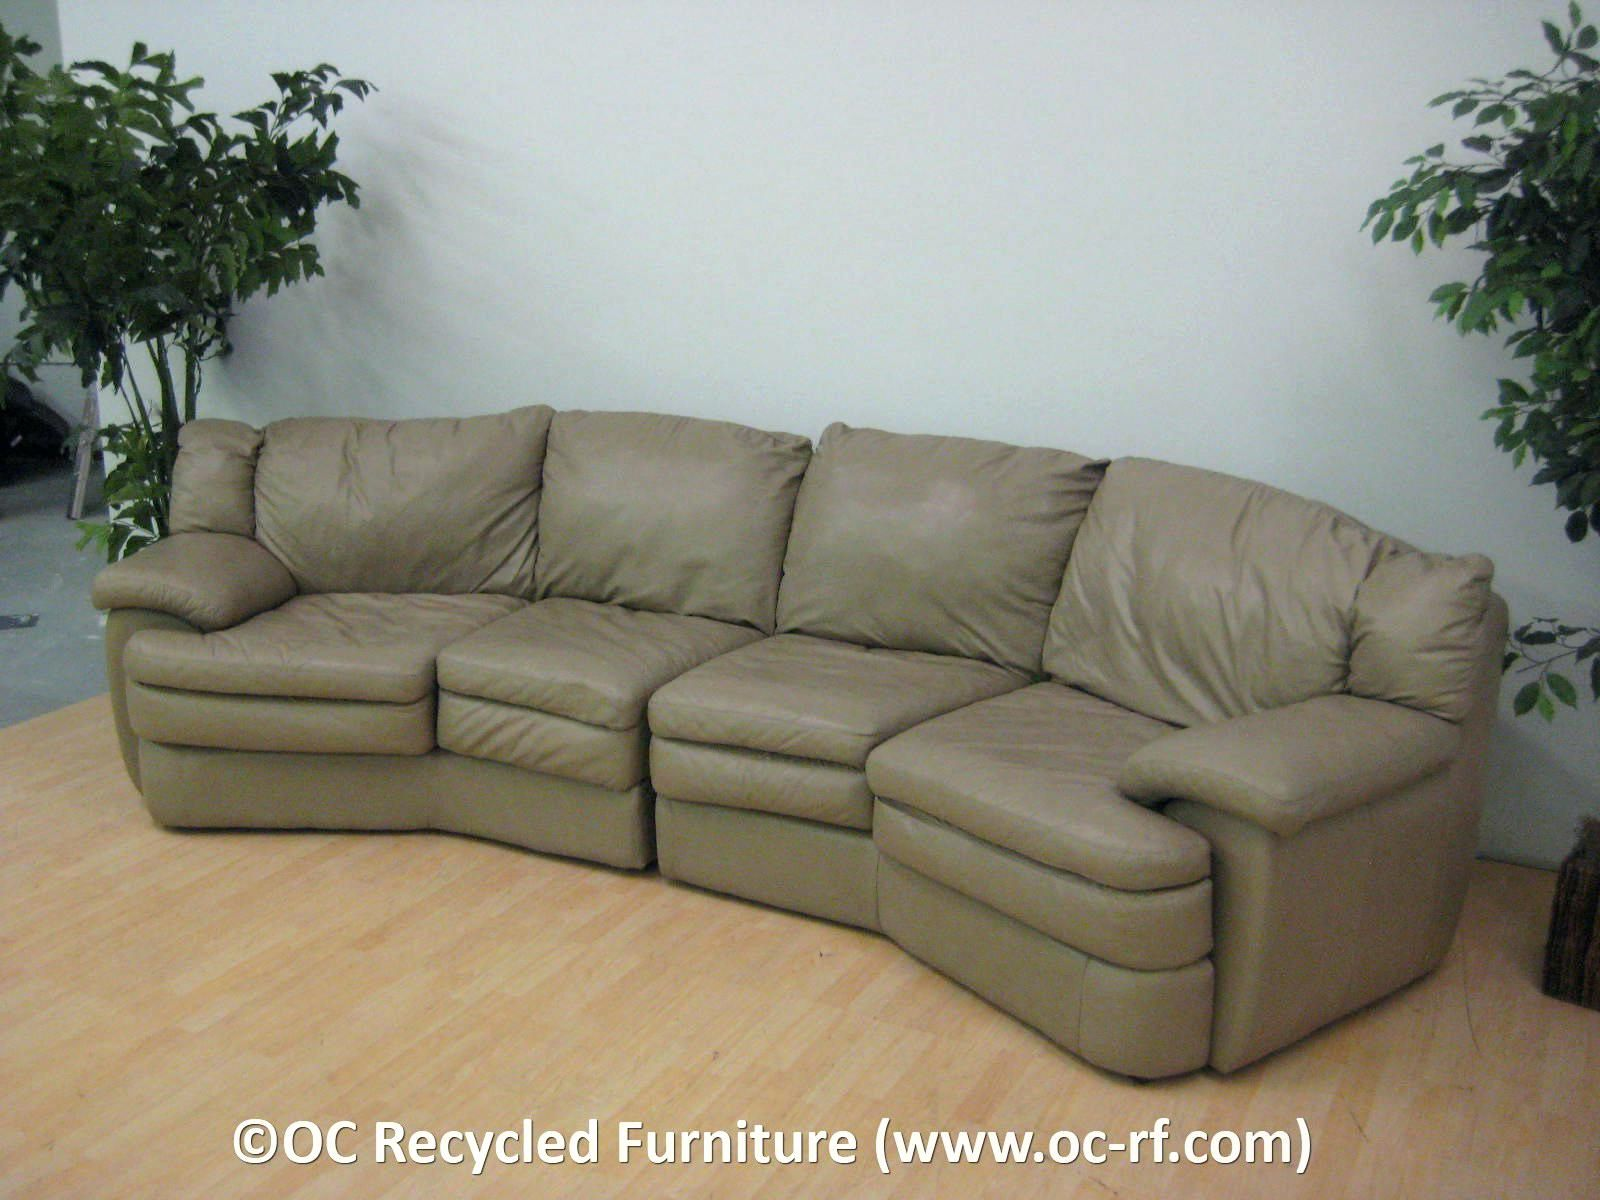 Luxury Real Leather sofas graphs couches curved sectional